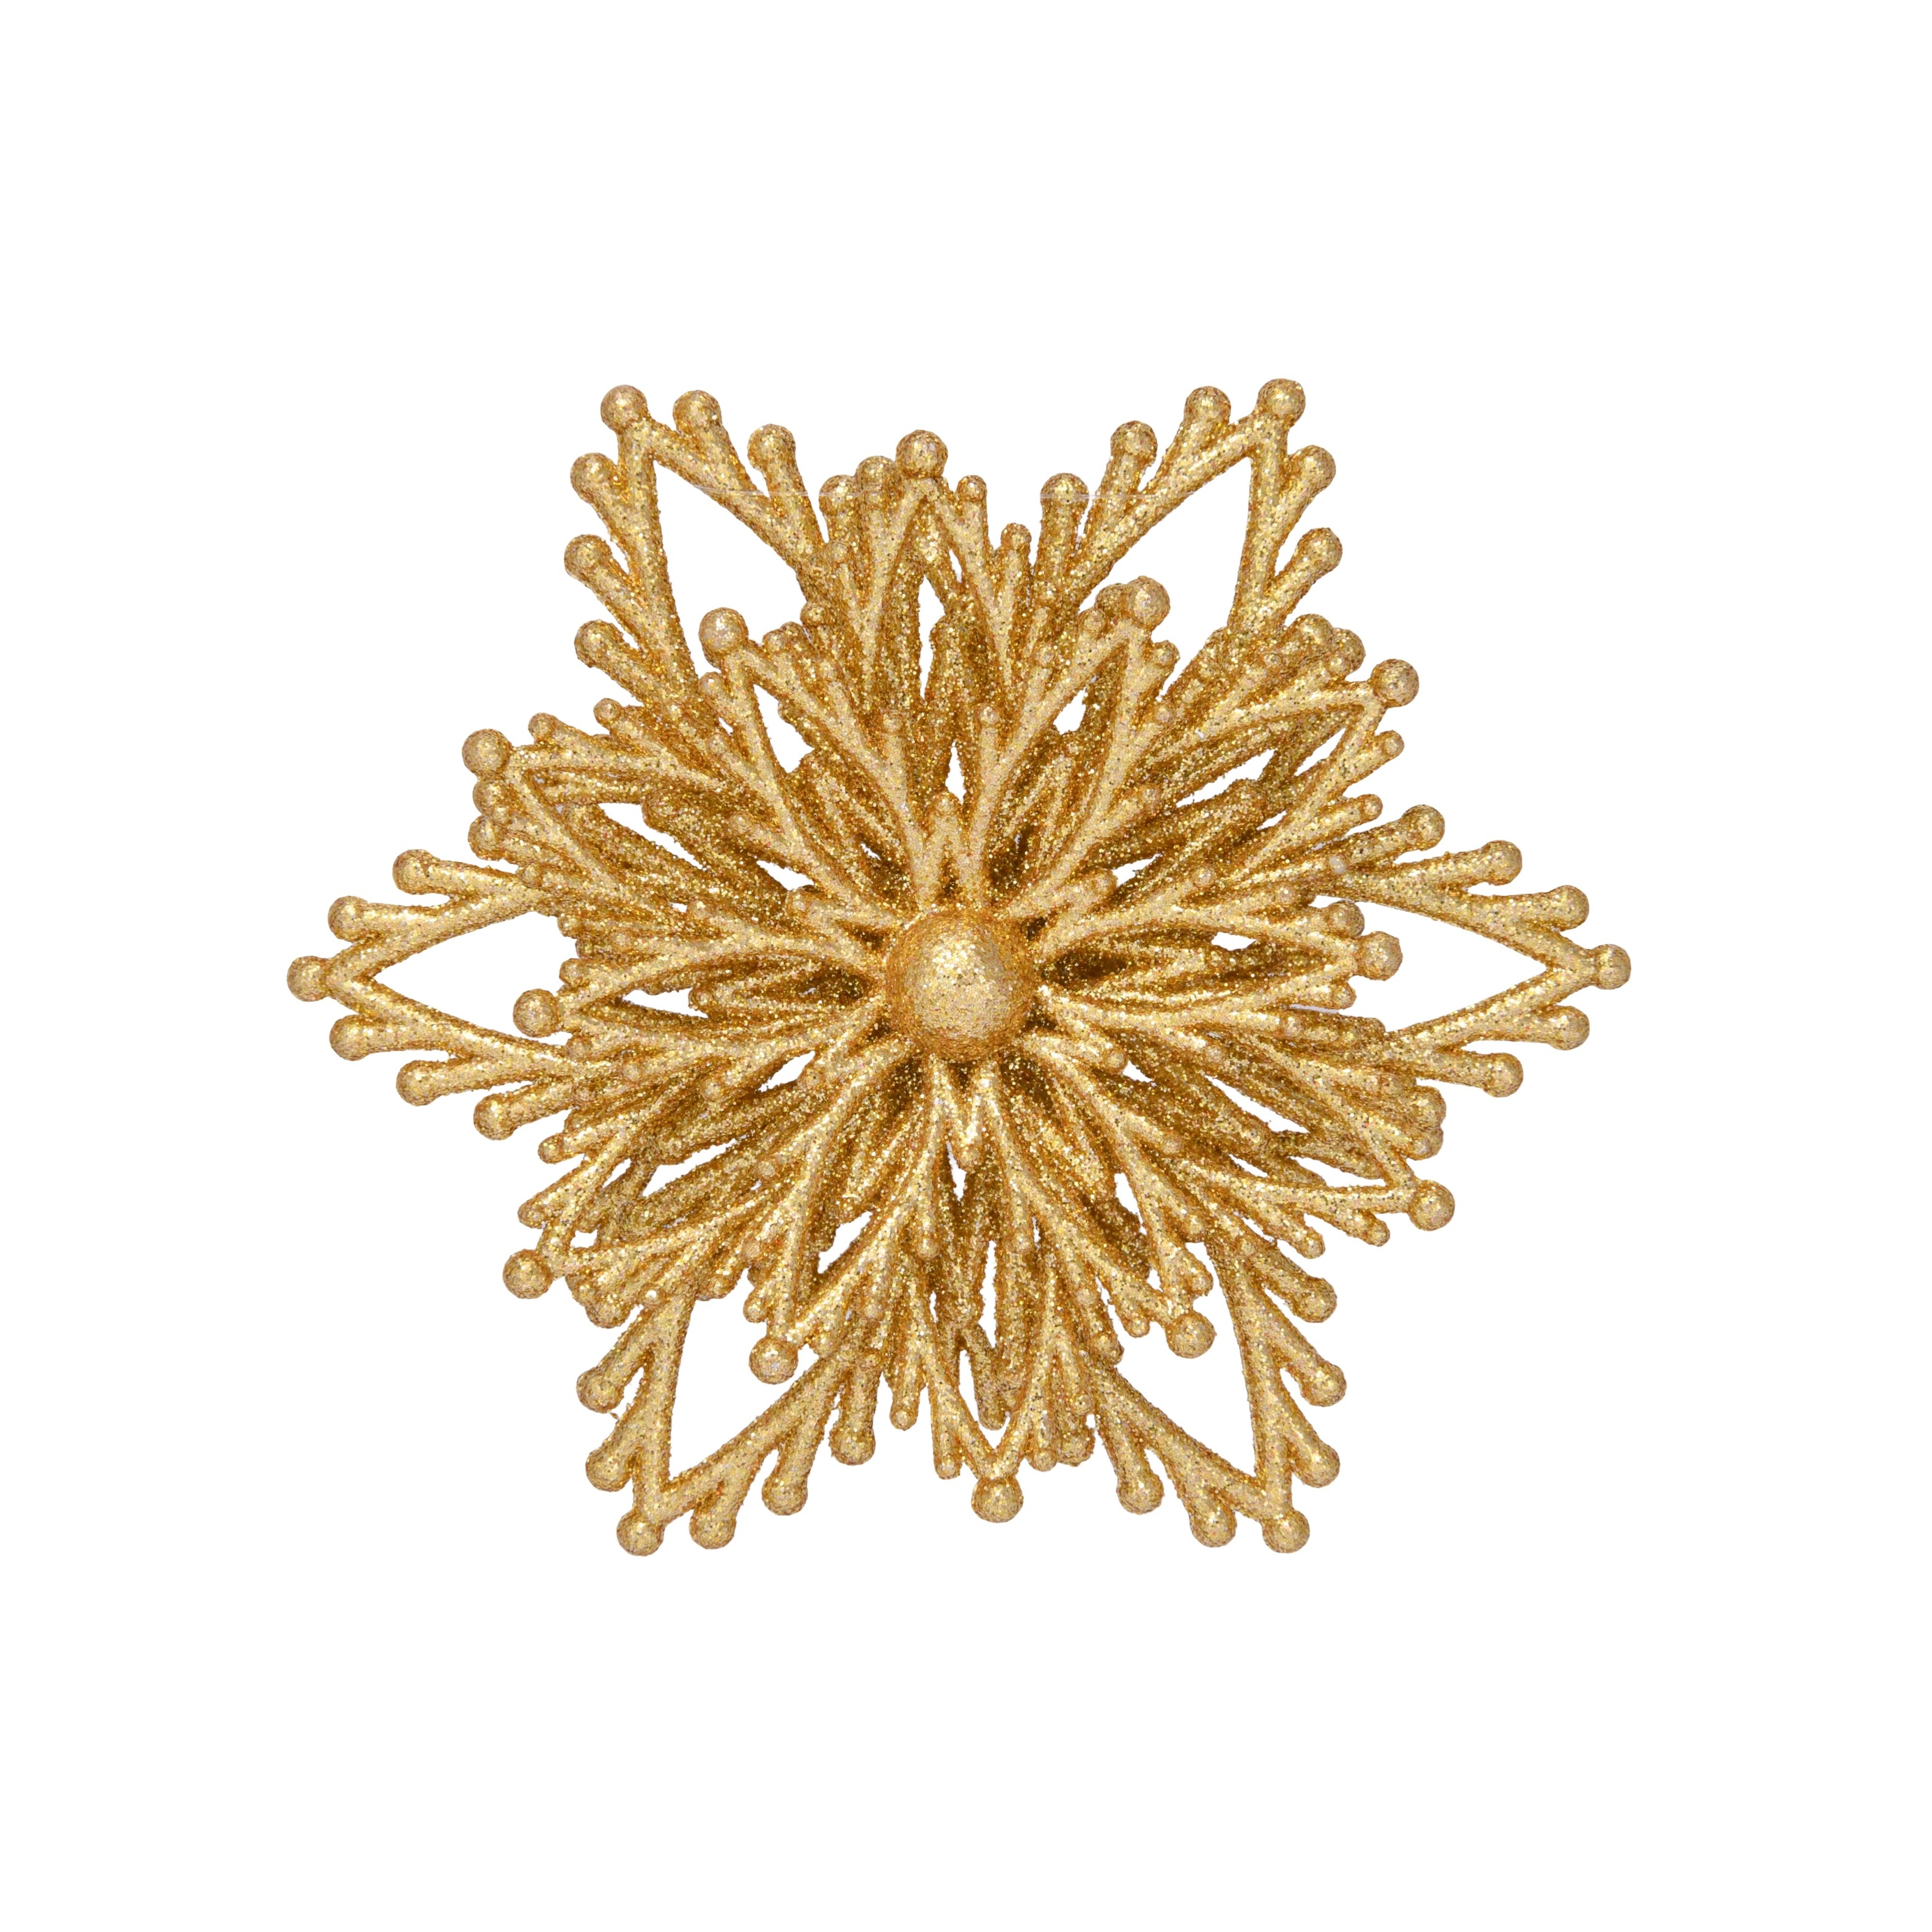 4in Glitter Gold Snowflake